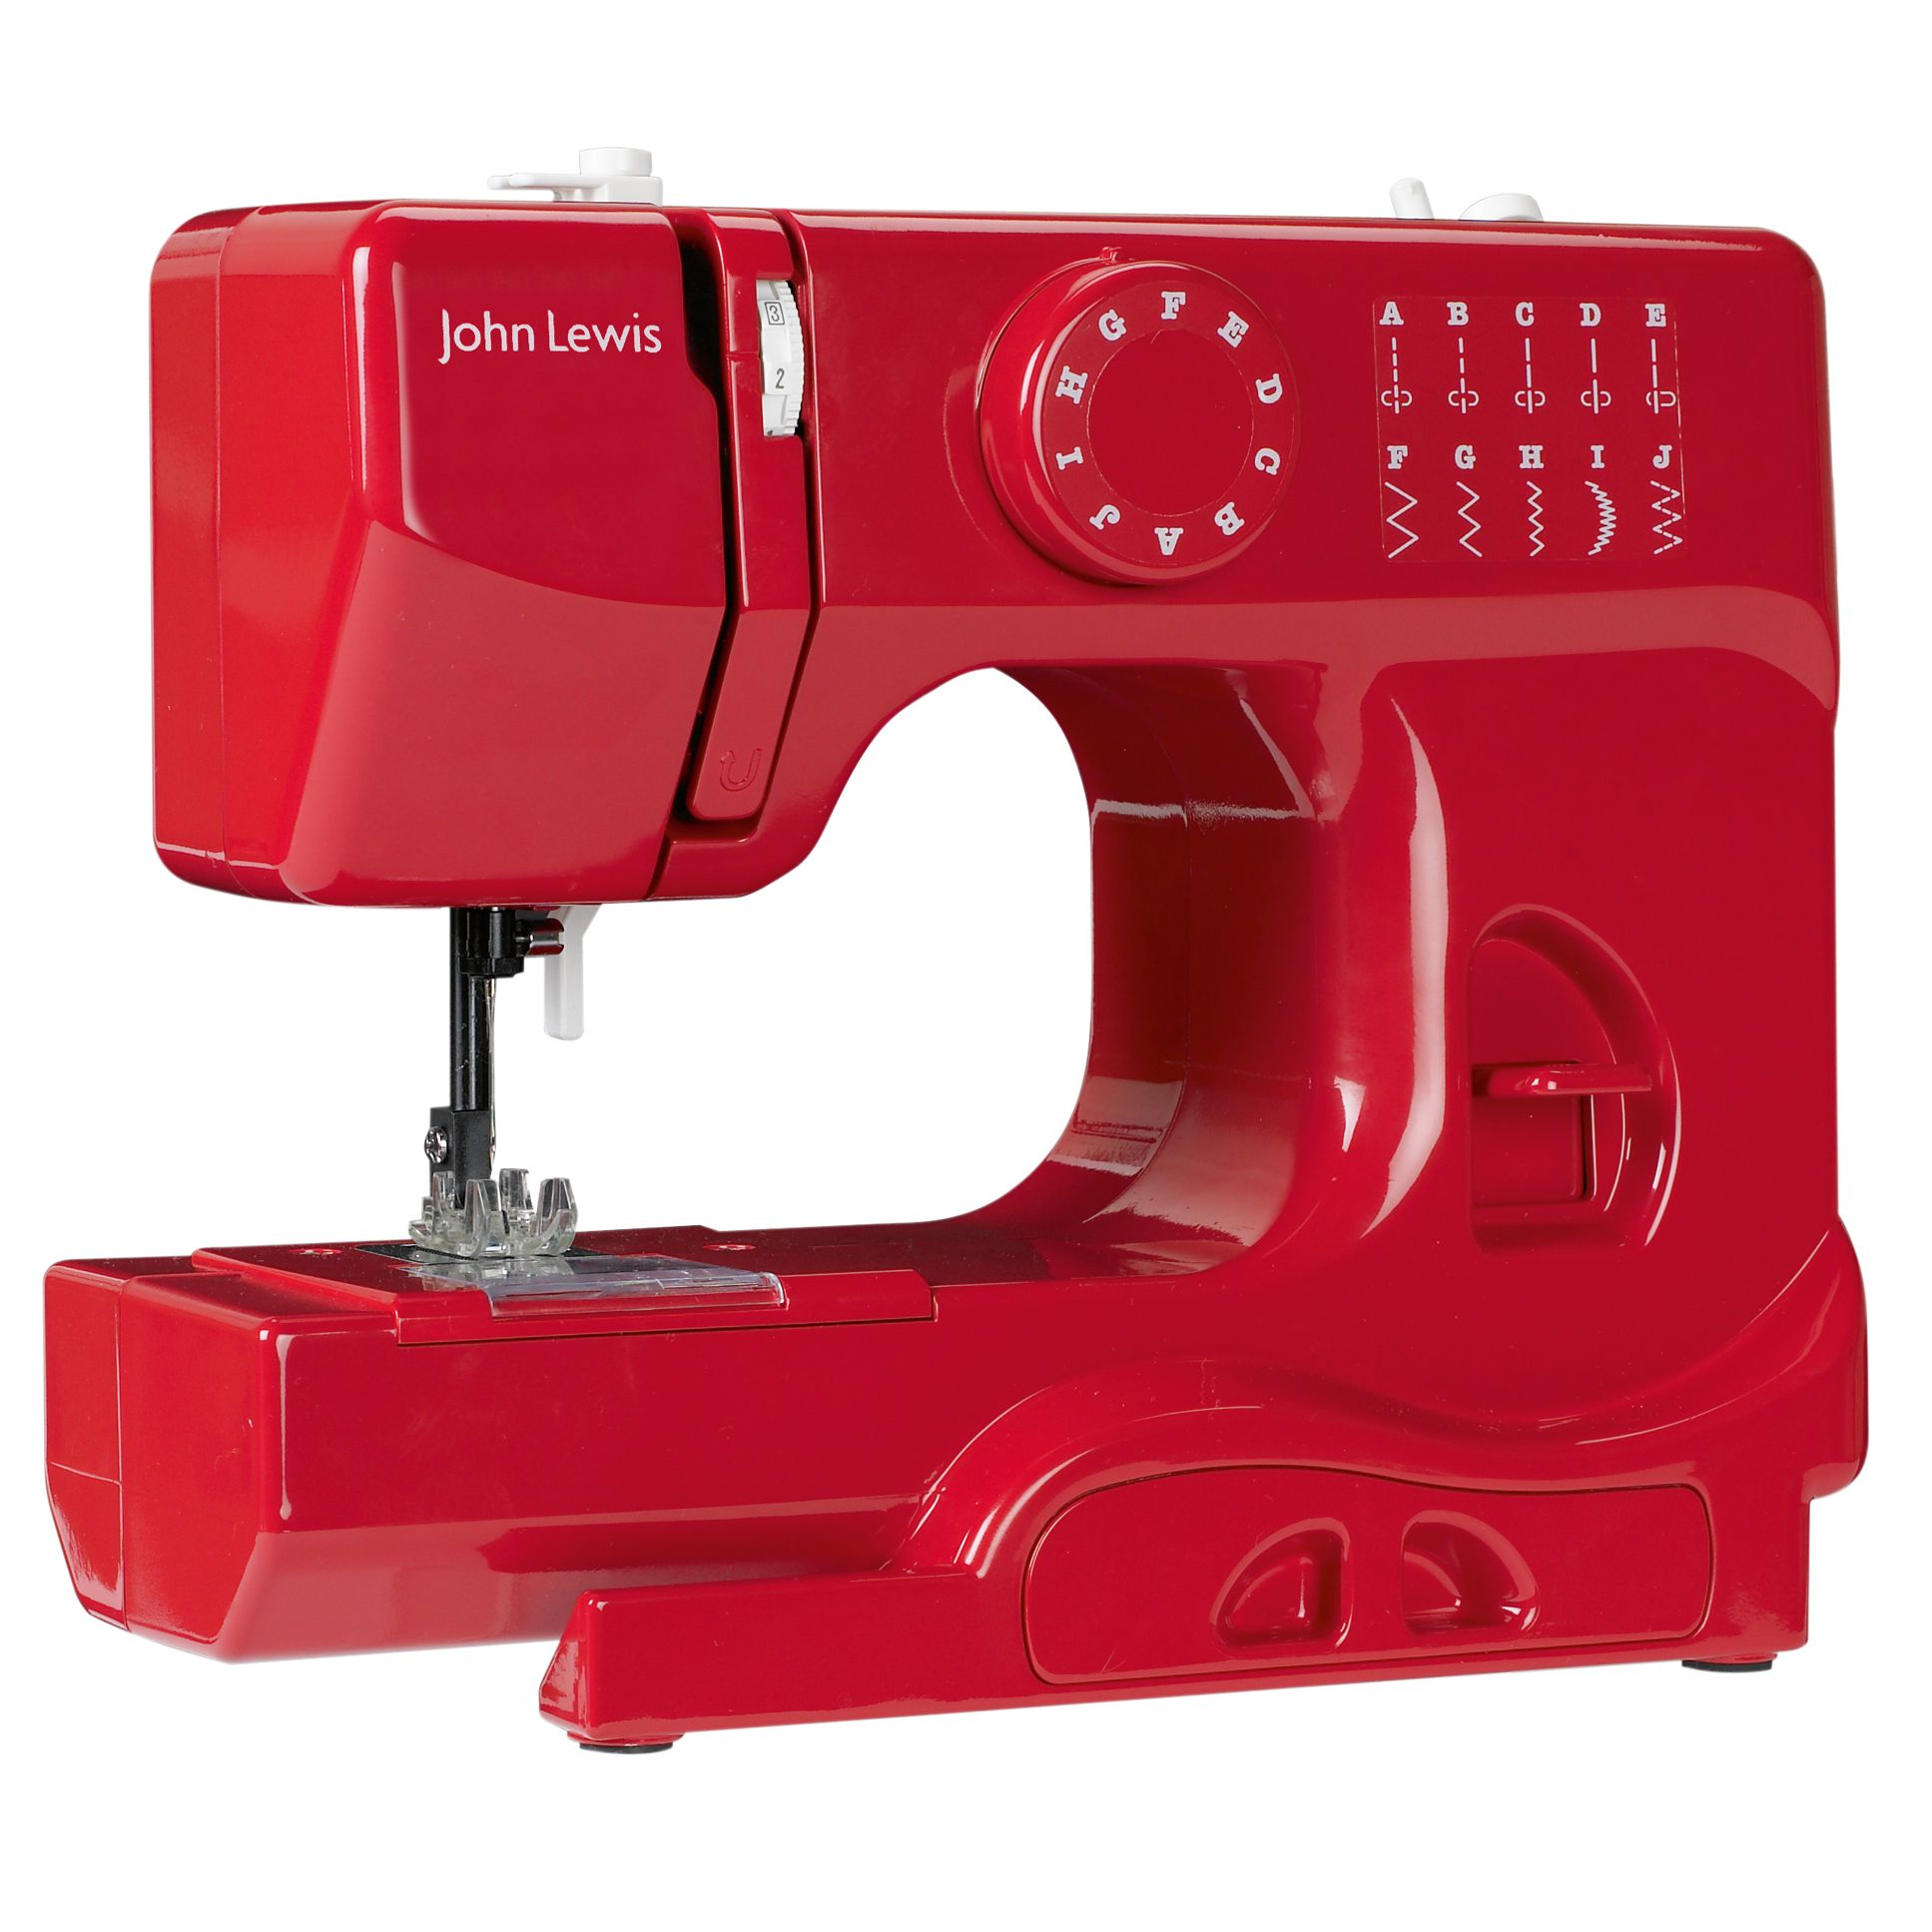 Sewing Machines reviews, cheap prices, uk delivery, compare prices